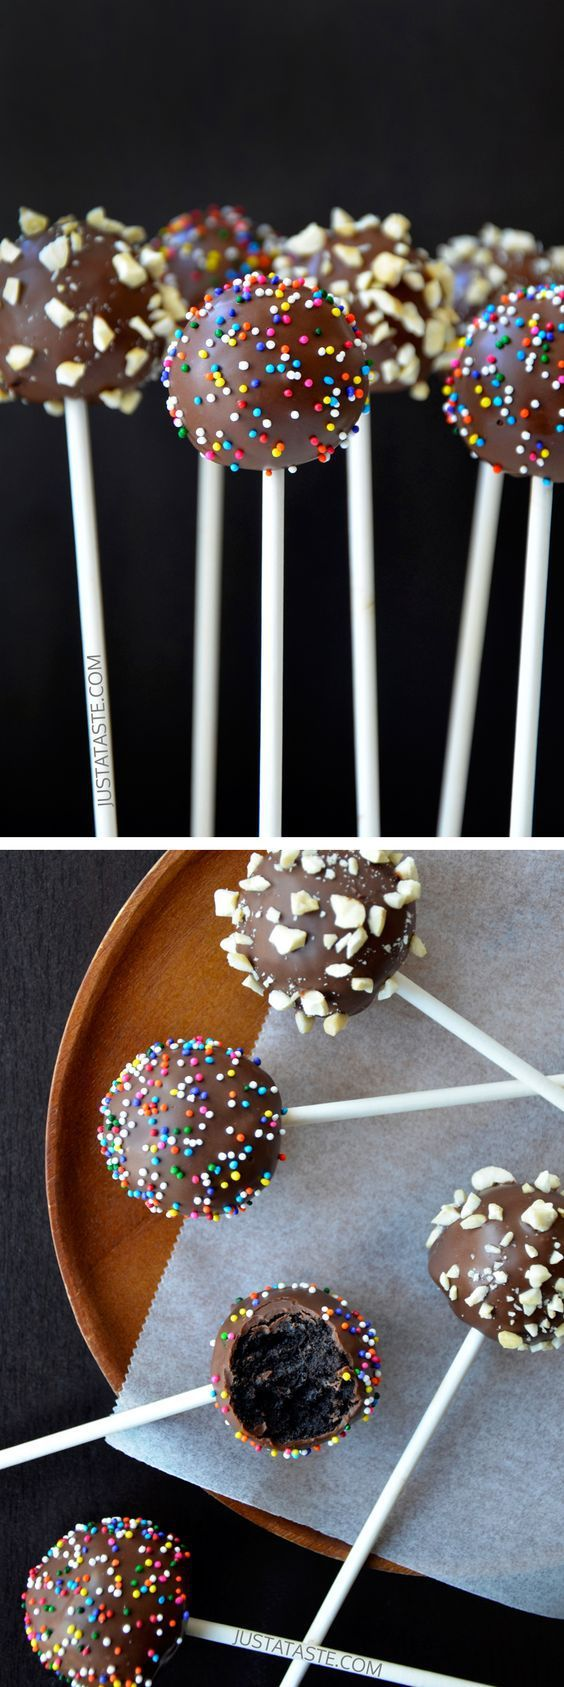 http://www.justataste.com/no-bake-chocolate-cookie-pops-recipe/